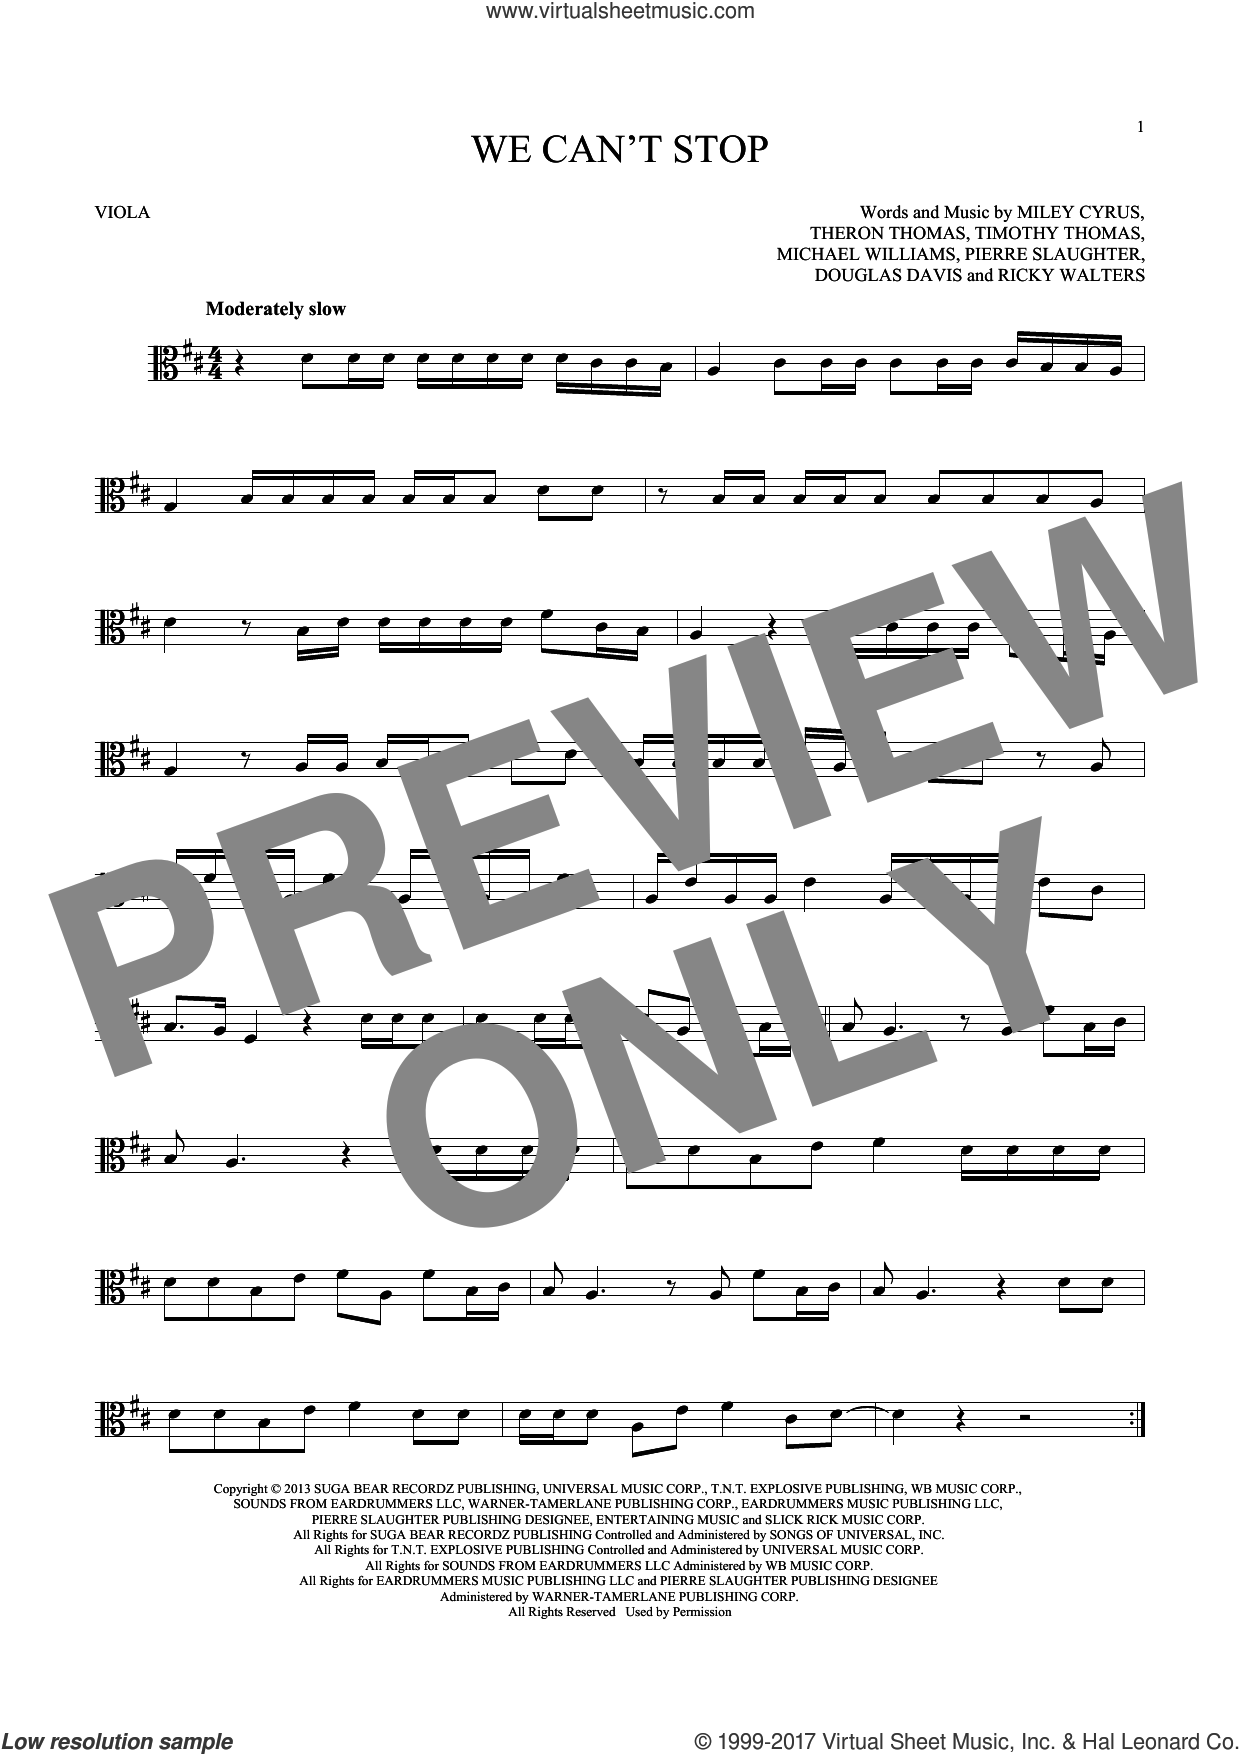 We Can't Stop sheet music for viola solo by Timmy Thomas, Michael Williams, Miley Cyrus, Pierre Slaughter and Ricky Walters. Score Image Preview.